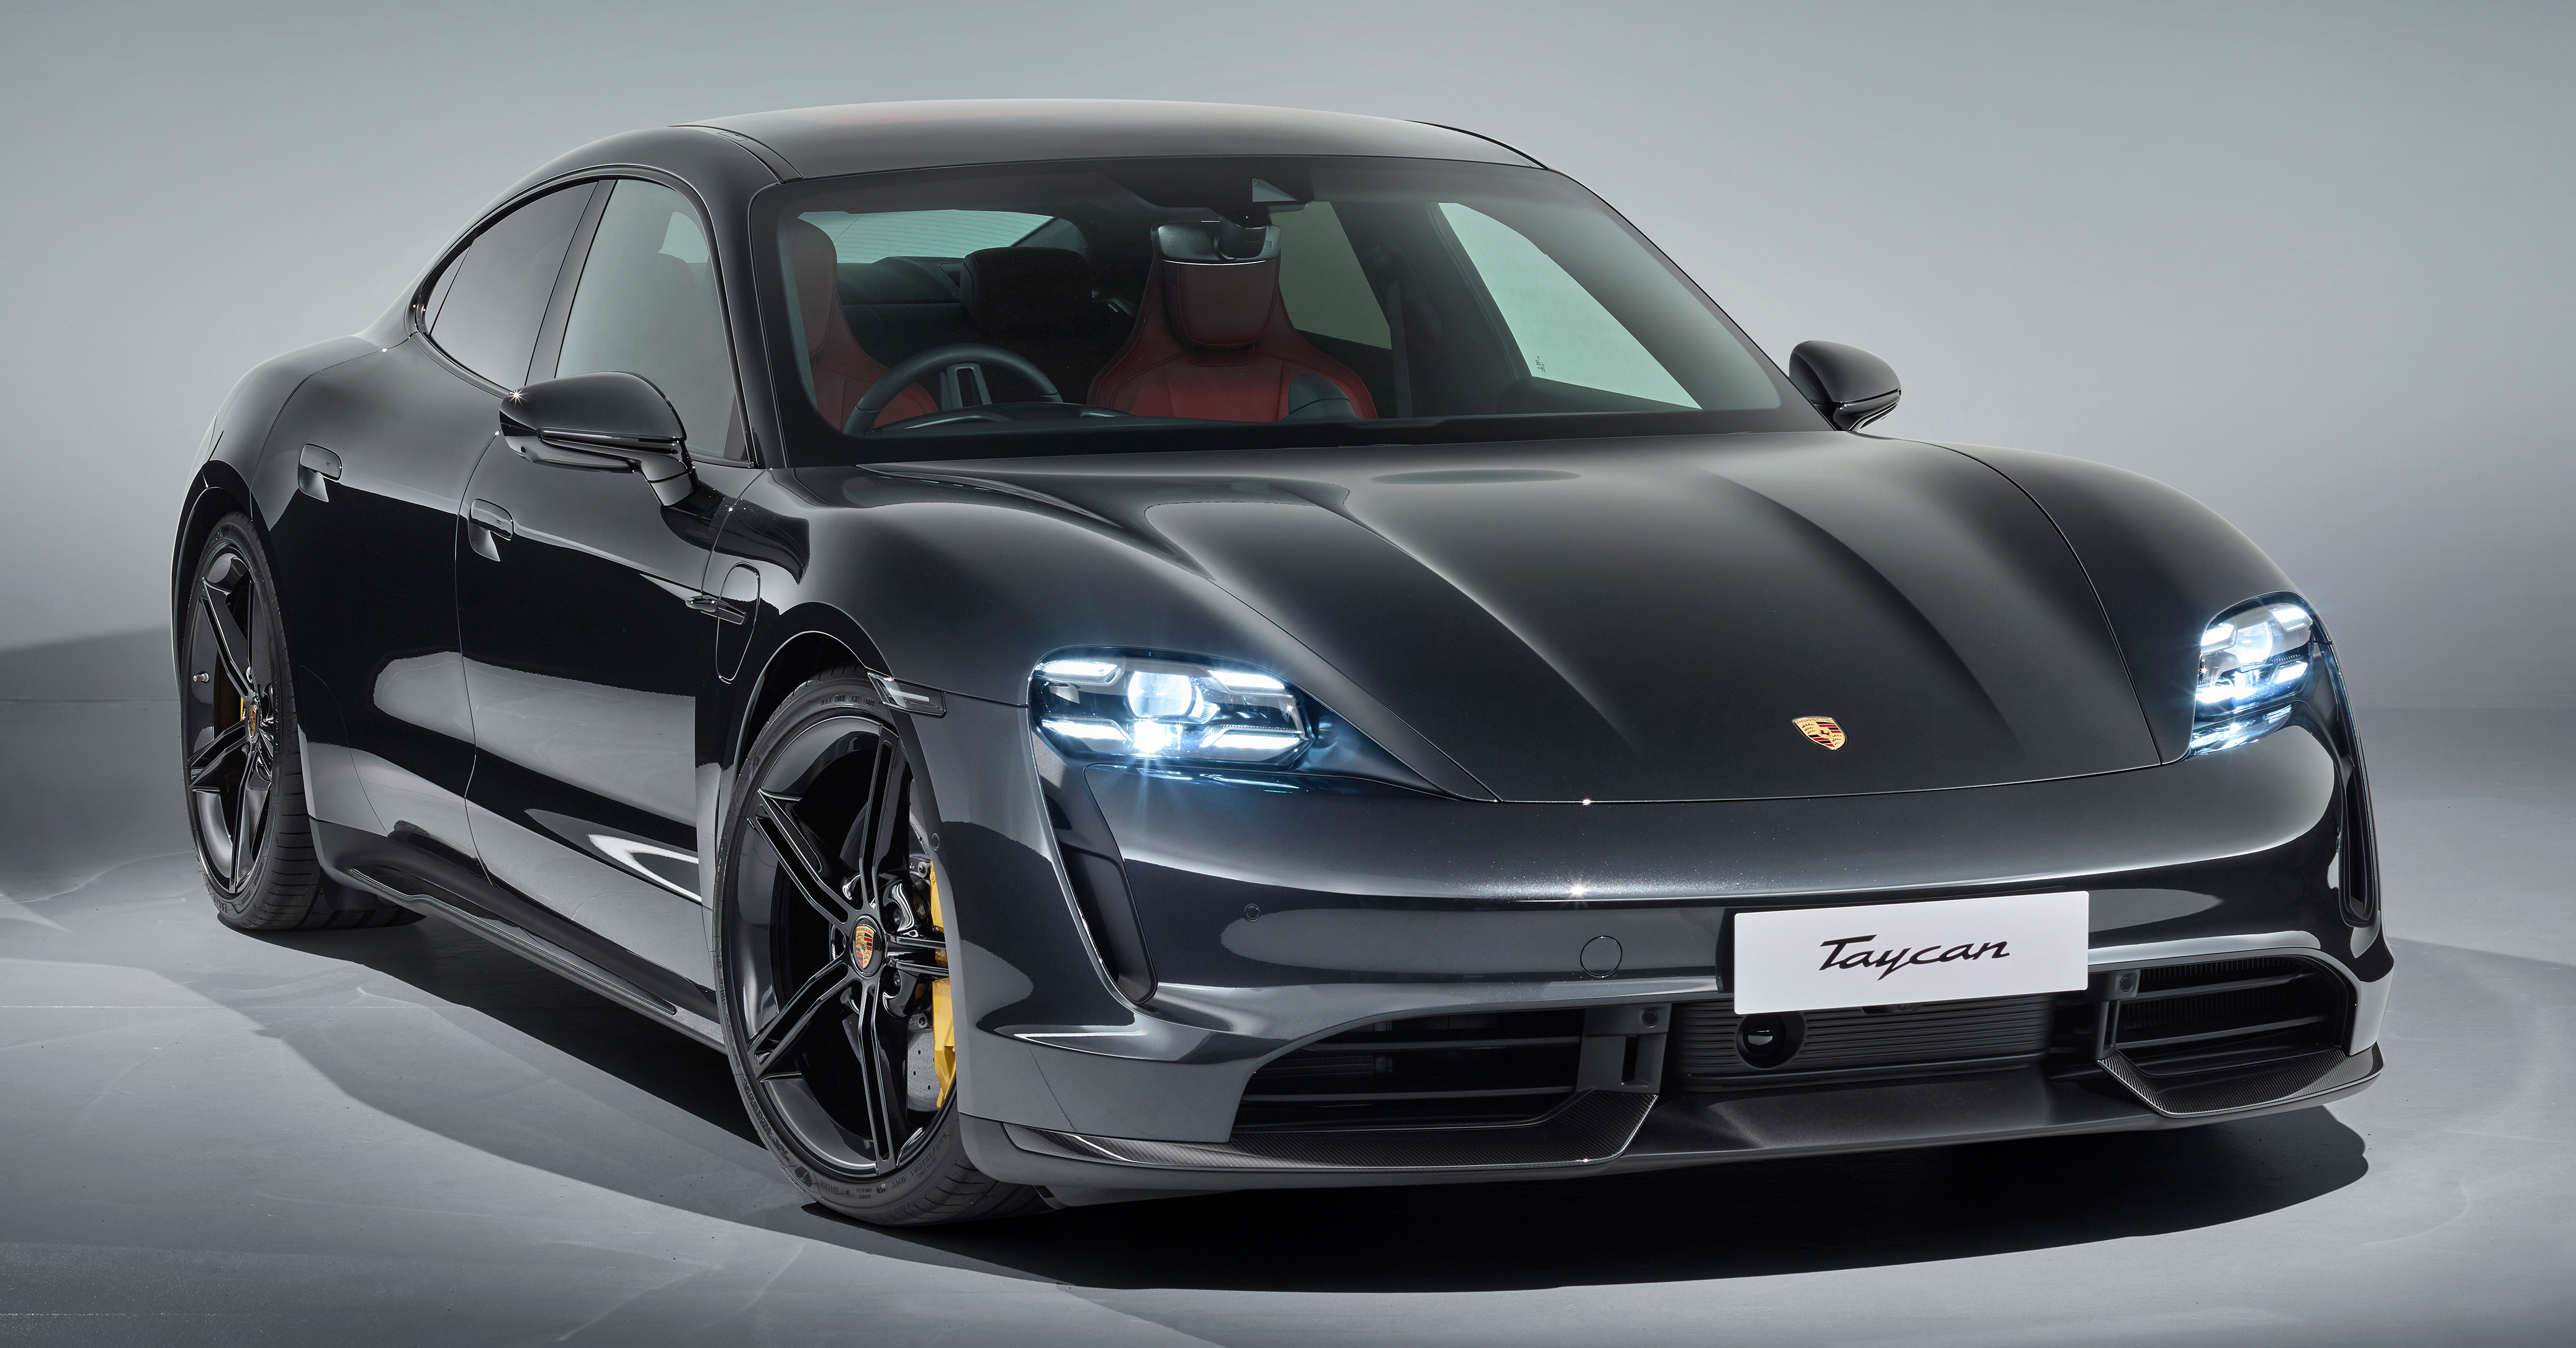 2020 Porsche Taycan Debuting In Malaysia On Sept 18 Watch The Digital Launch Live Stream Here At 8 Pm Paultan Org